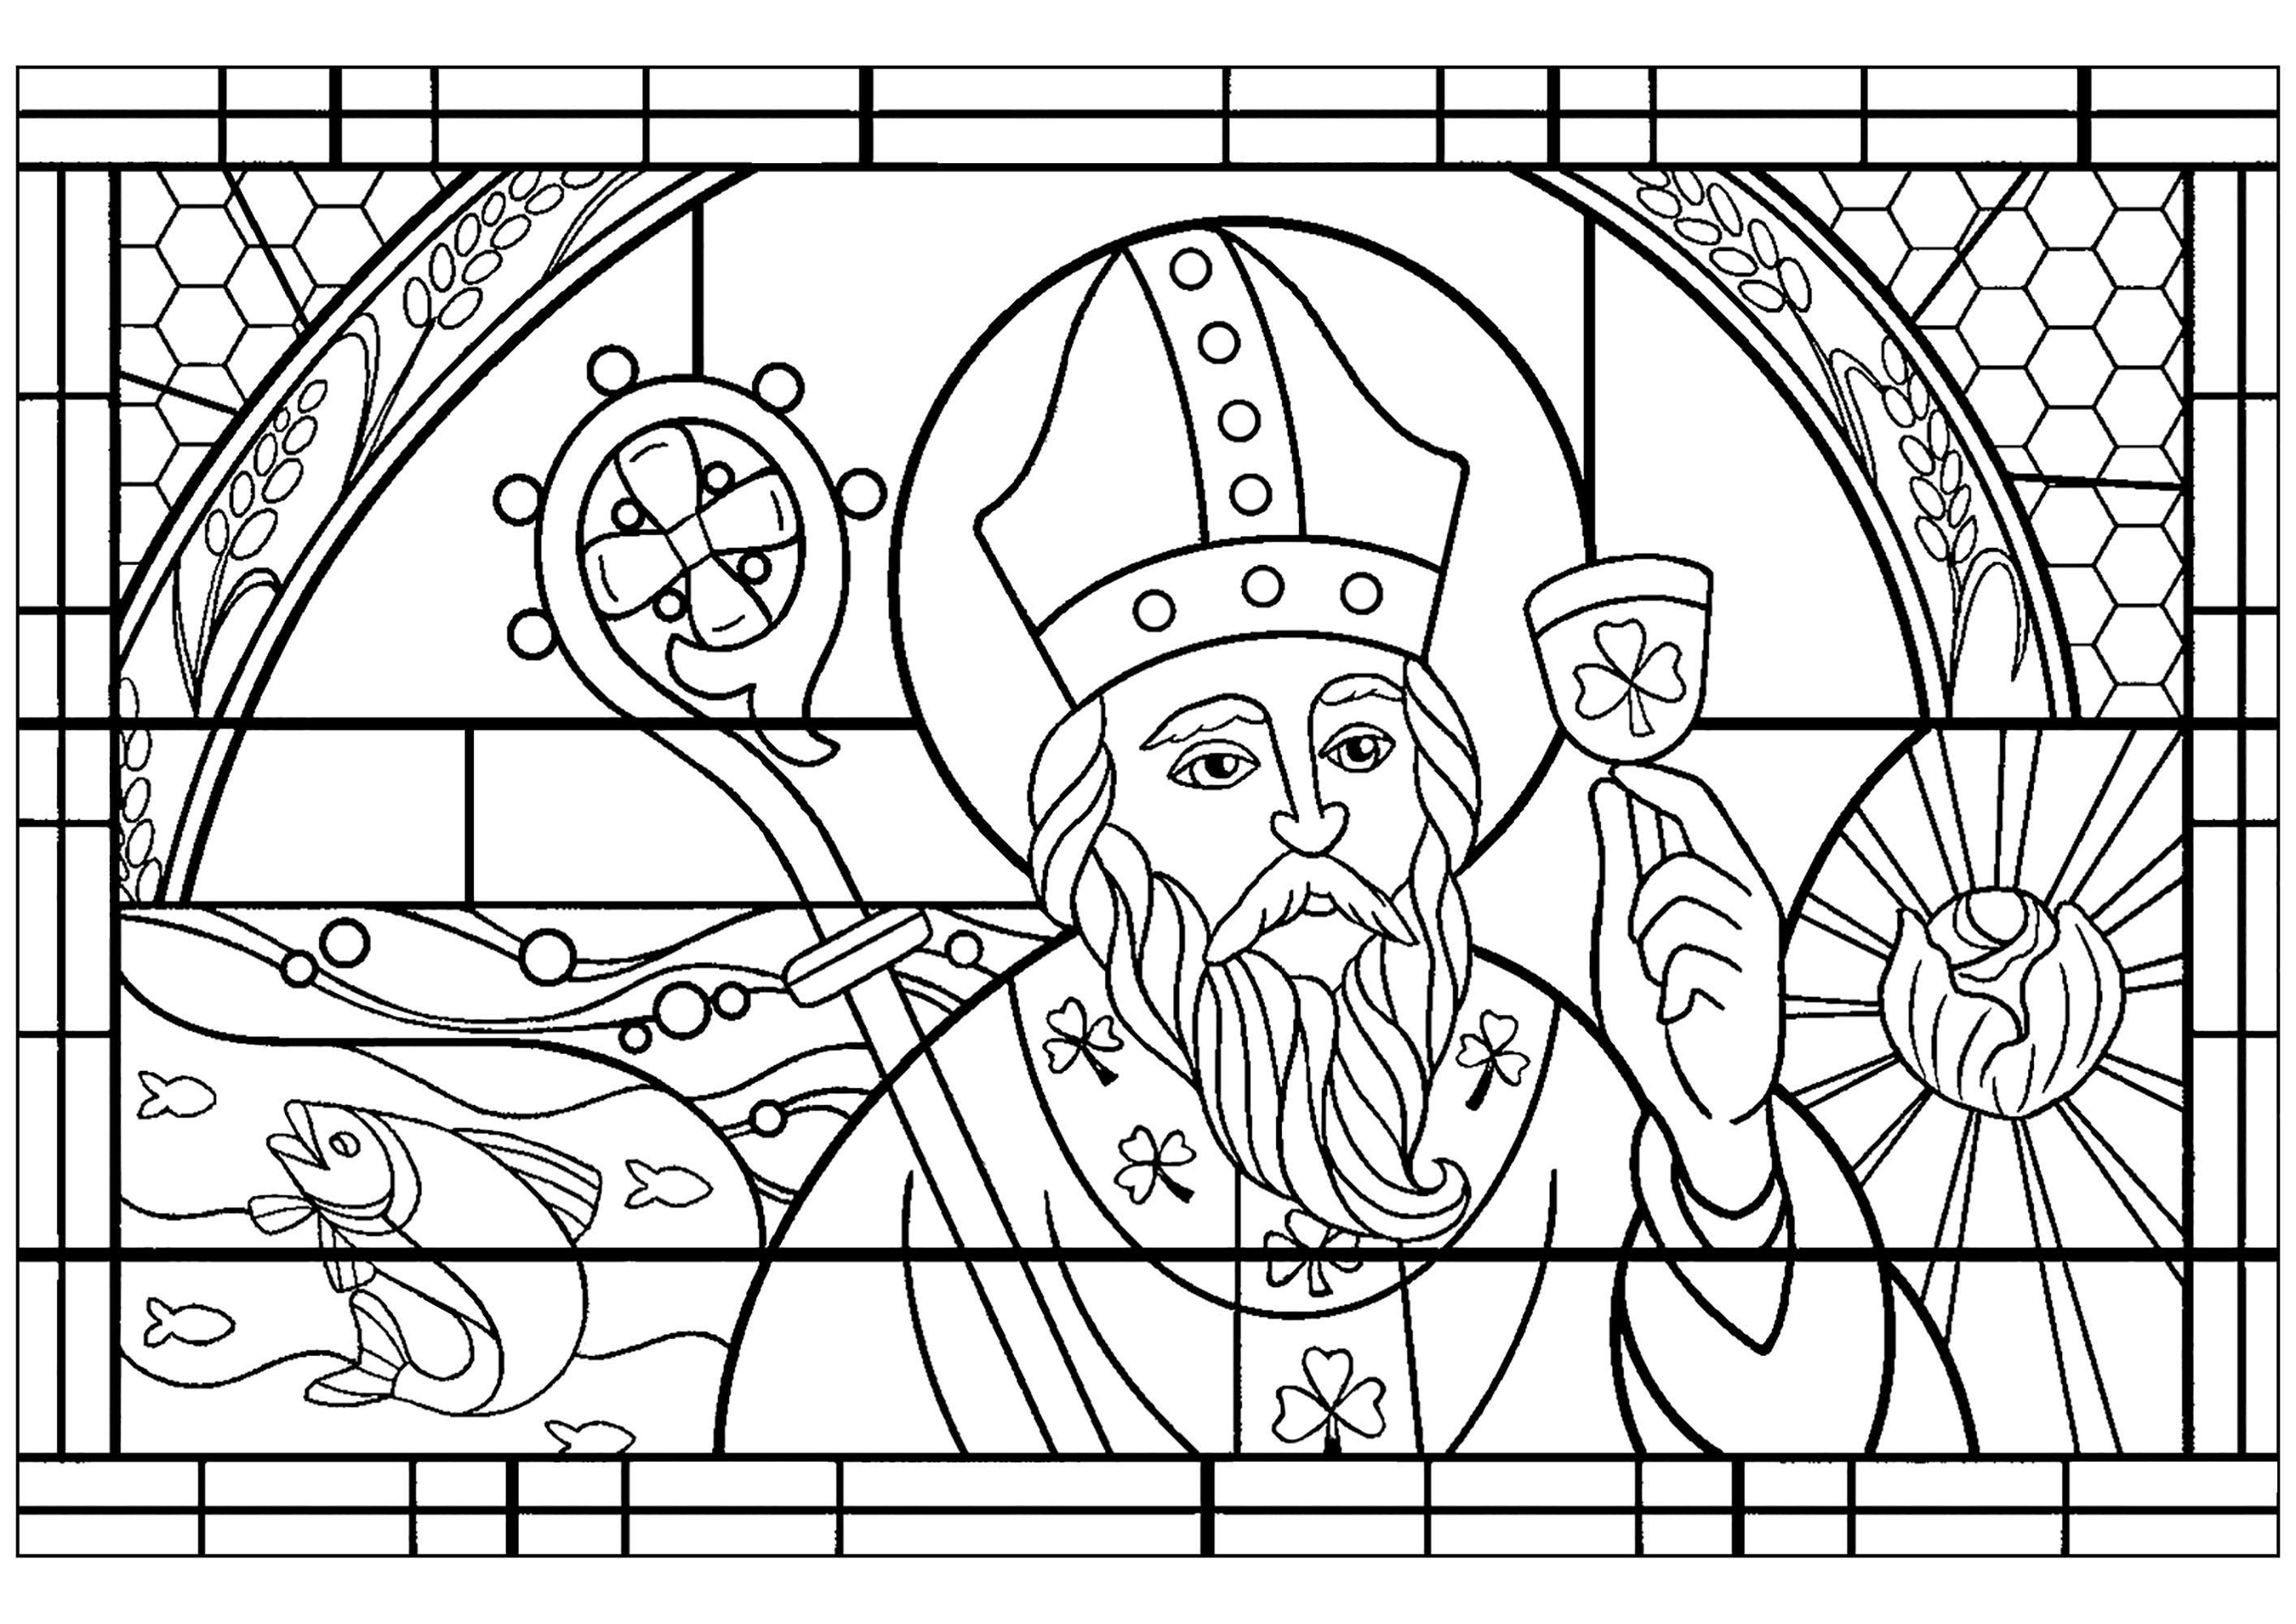 Saint Patricks Day Coloring Page Stained Glass Style From An Nprorg Illustration